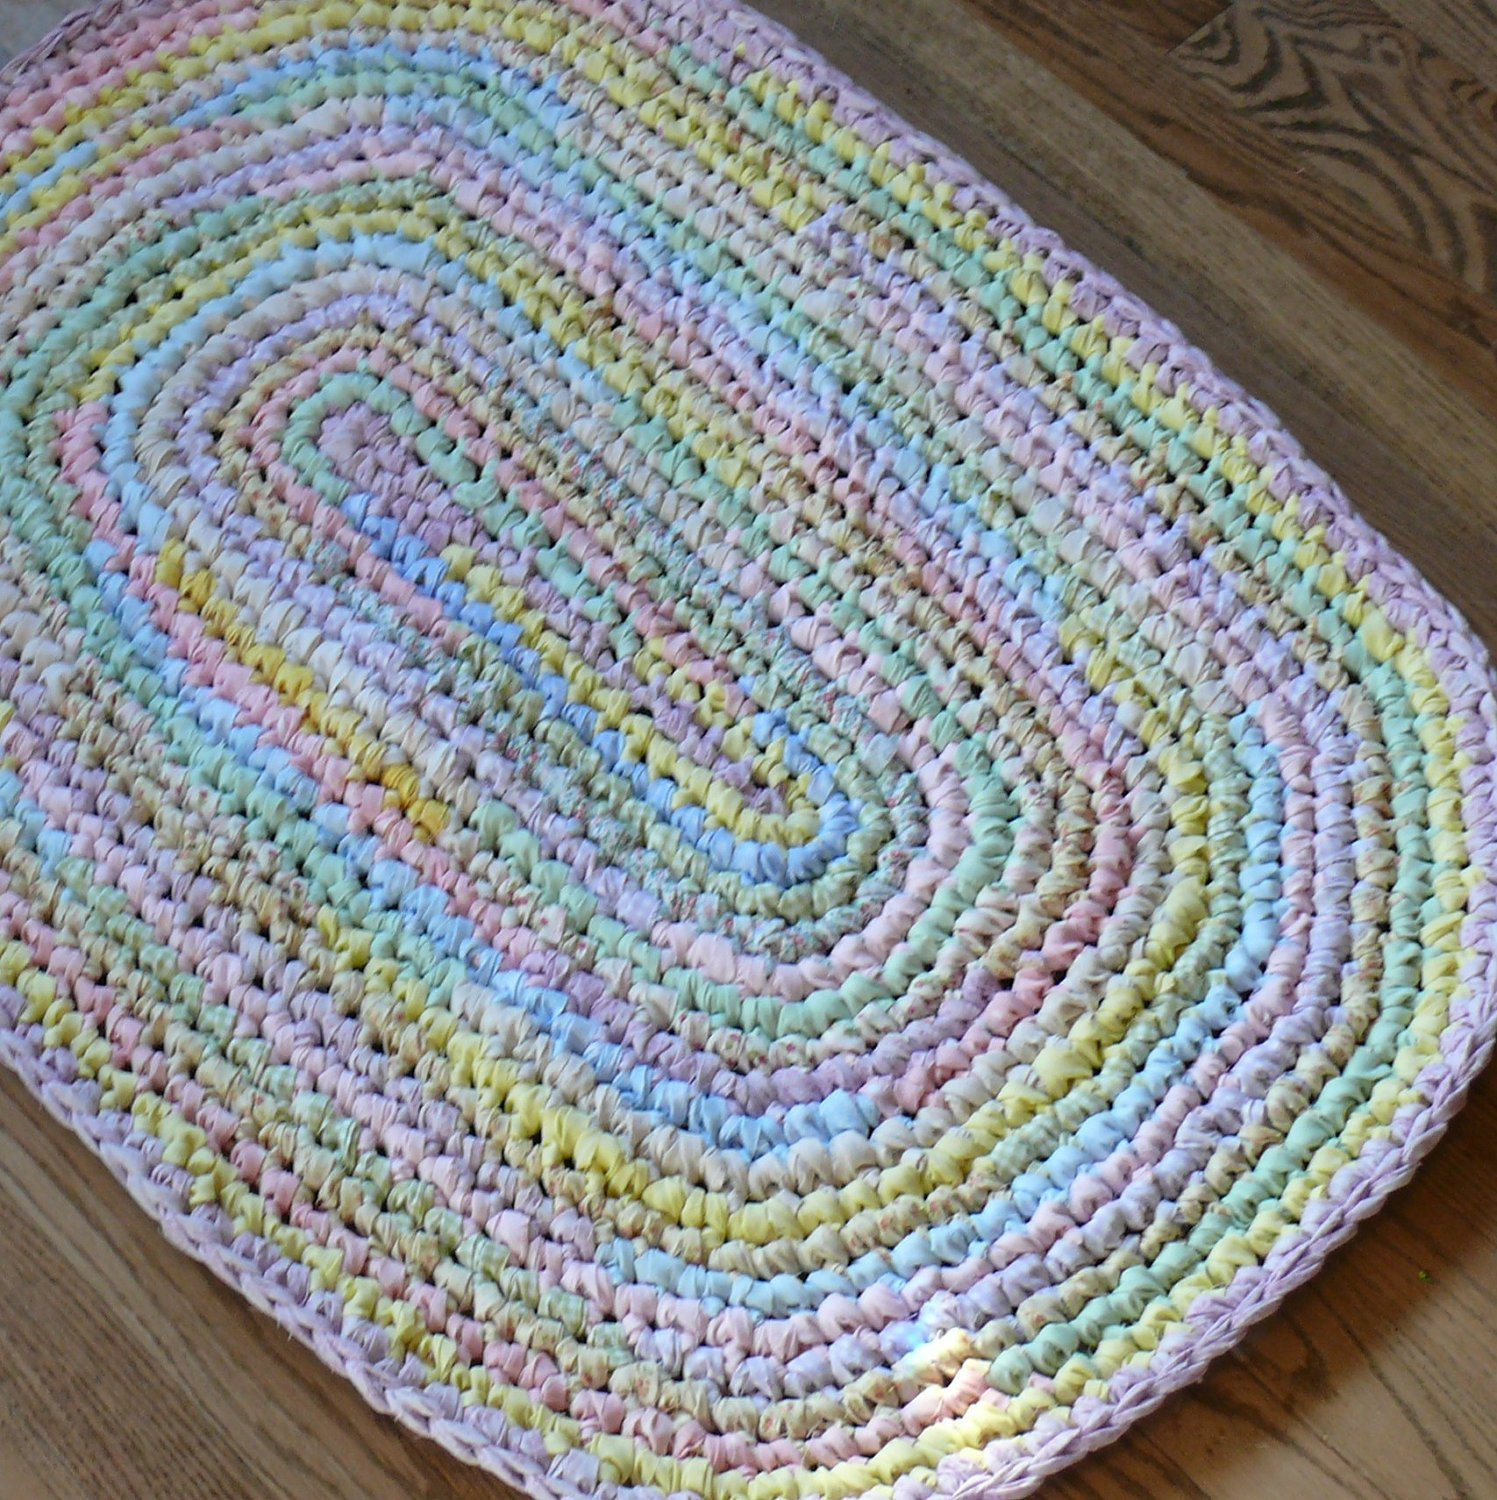 Crochet Circle Rug Inspirational Crocheted Oval Rag Rug Pastel Colors Of Amazing 43 Images Crochet Circle Rug